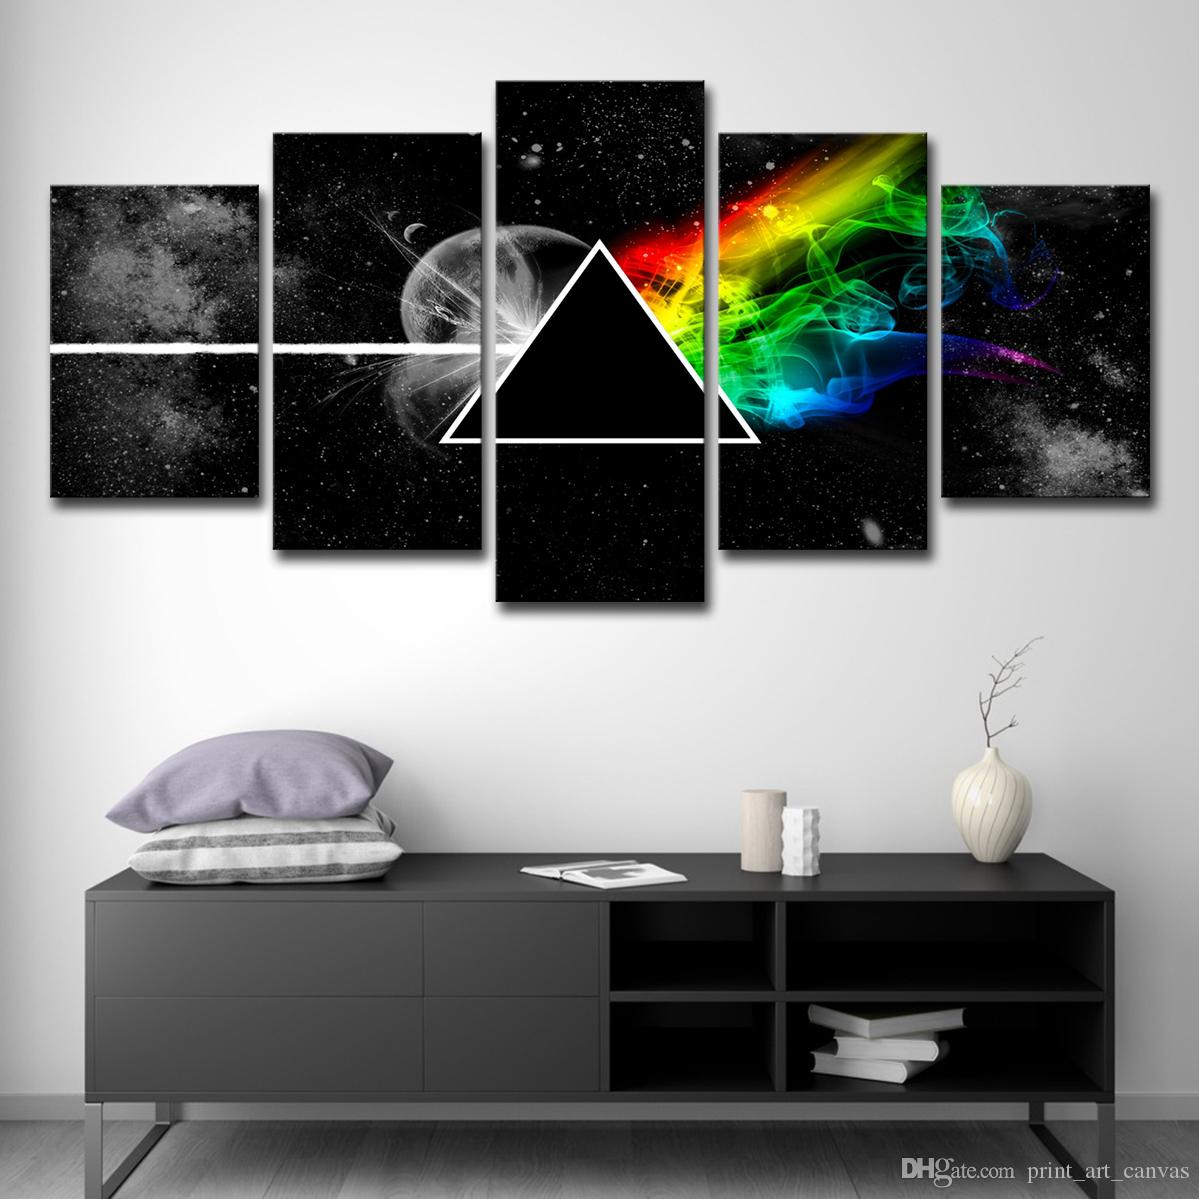 Wall Art Poster Canvas Hd Prints Paintings Pink Floyd Rock Music